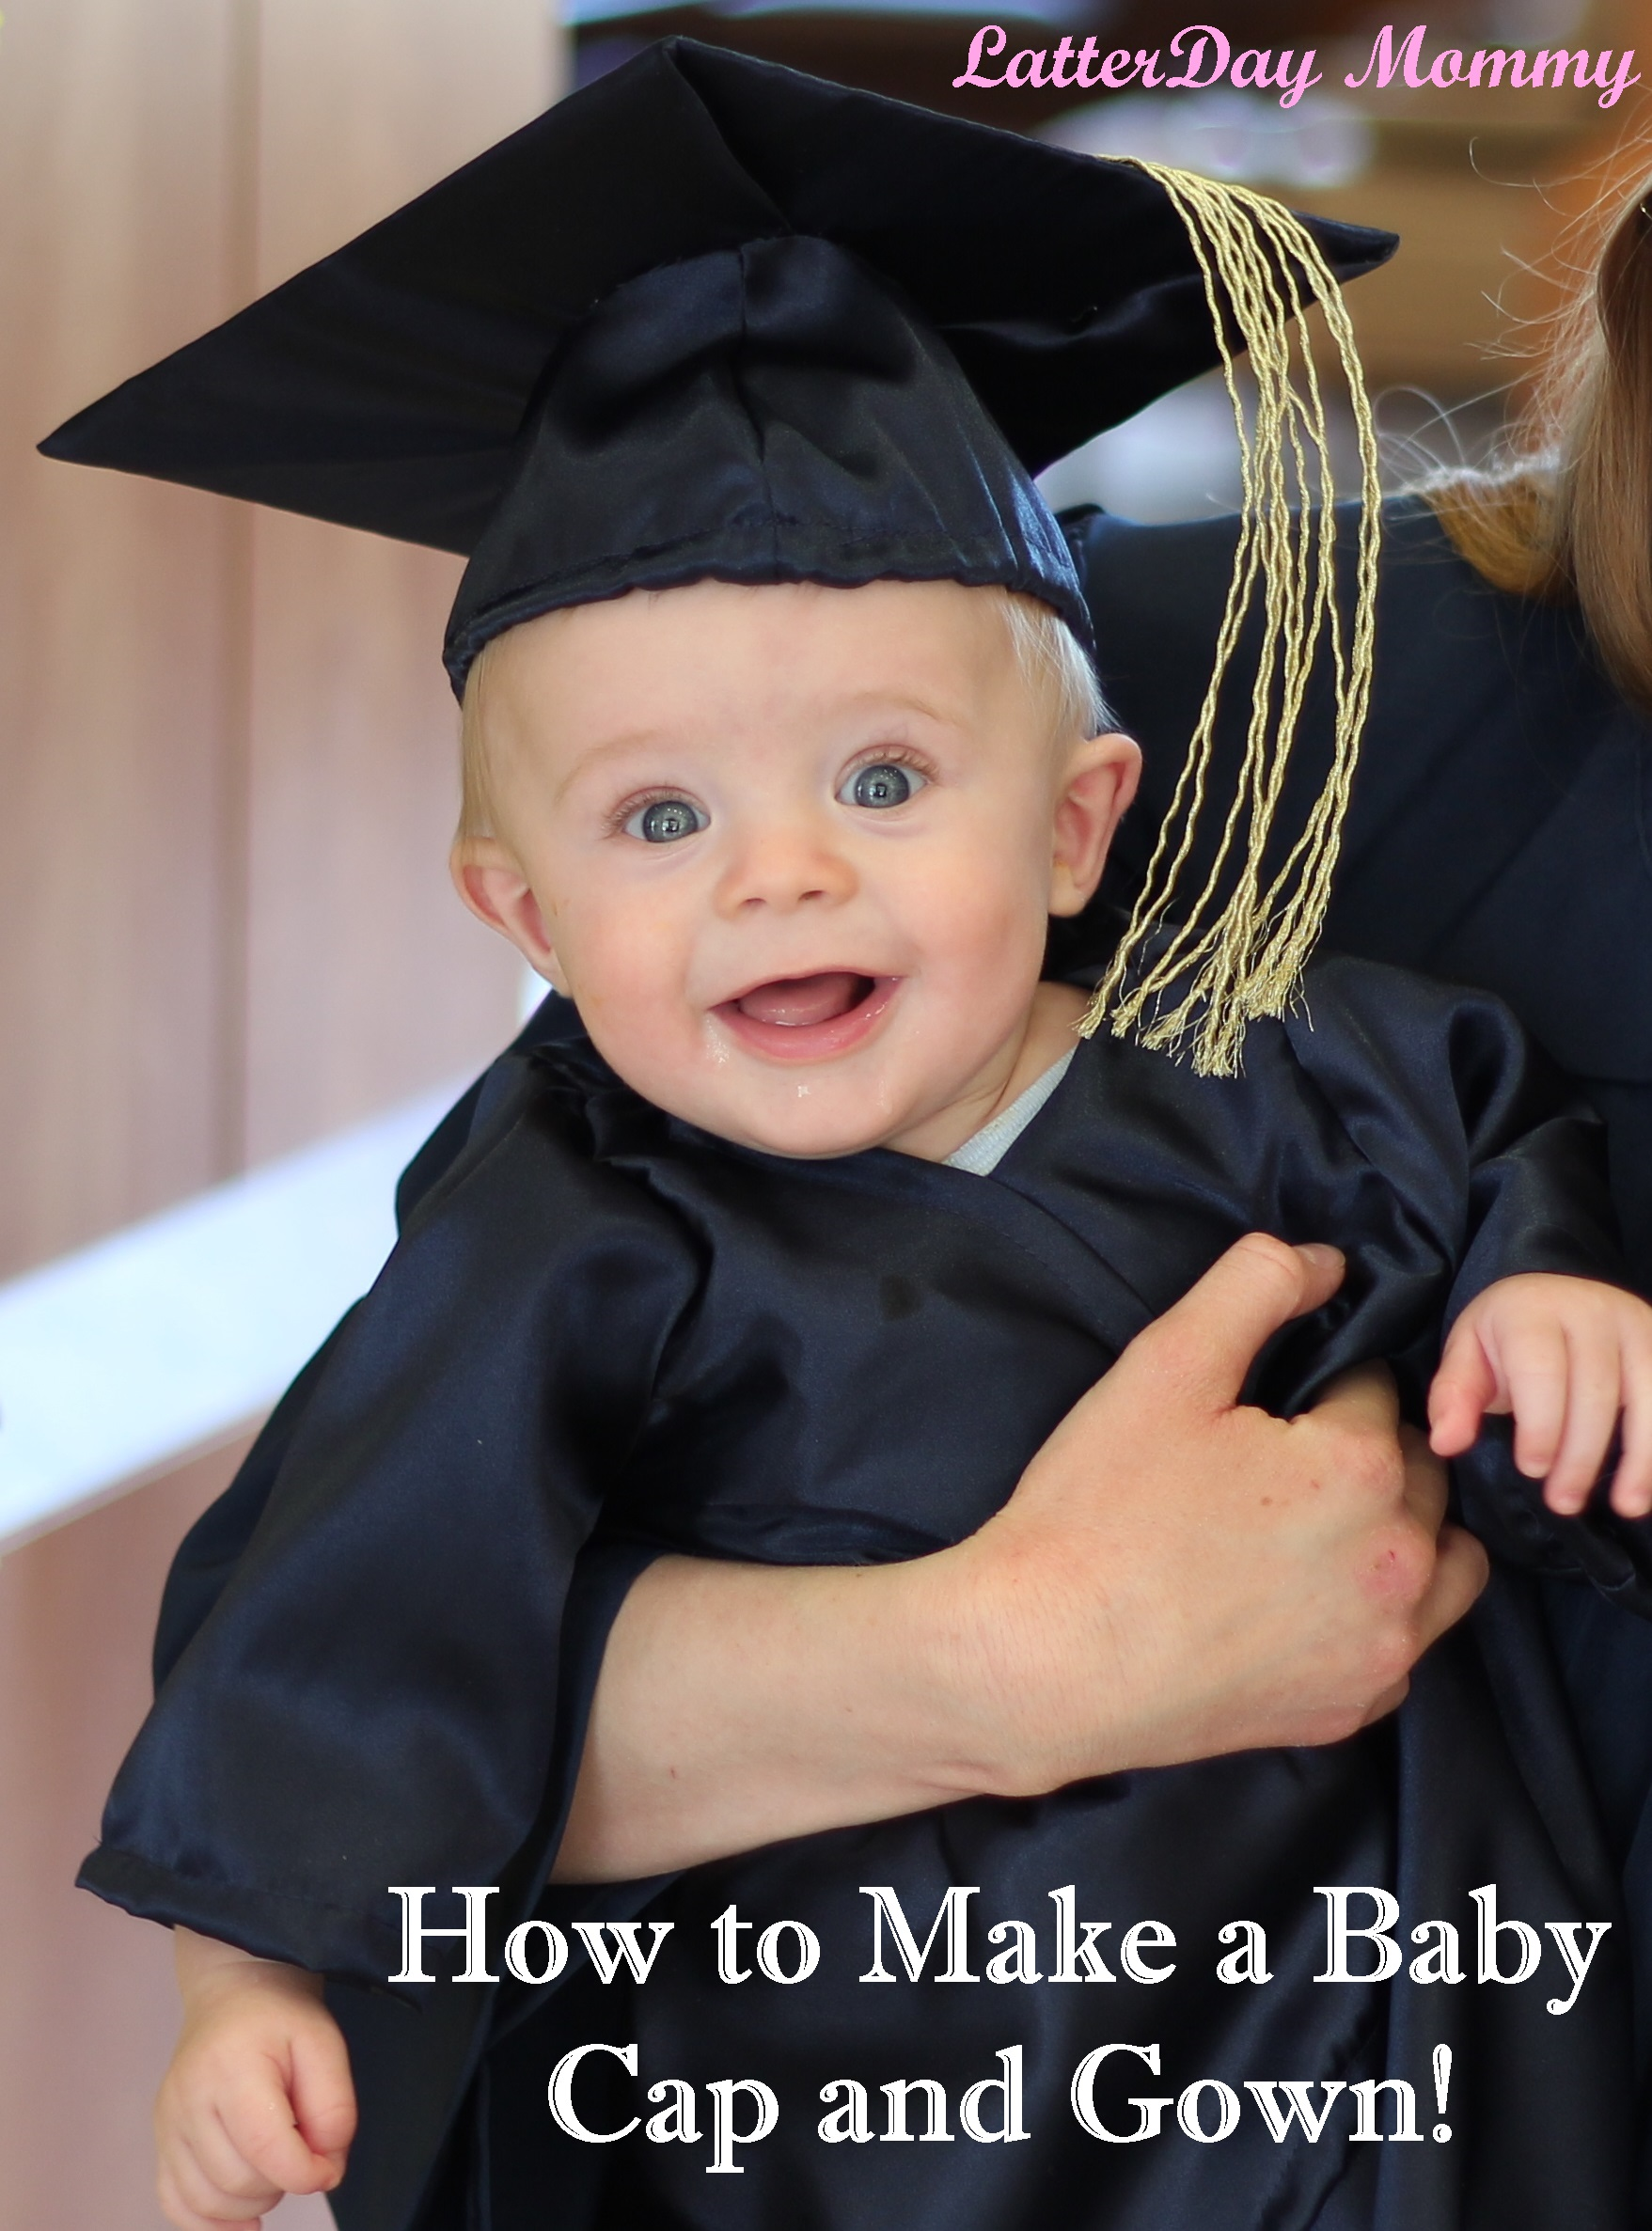 How To Make a Baby Graduation Cap and Gown » LatterDay Mommy